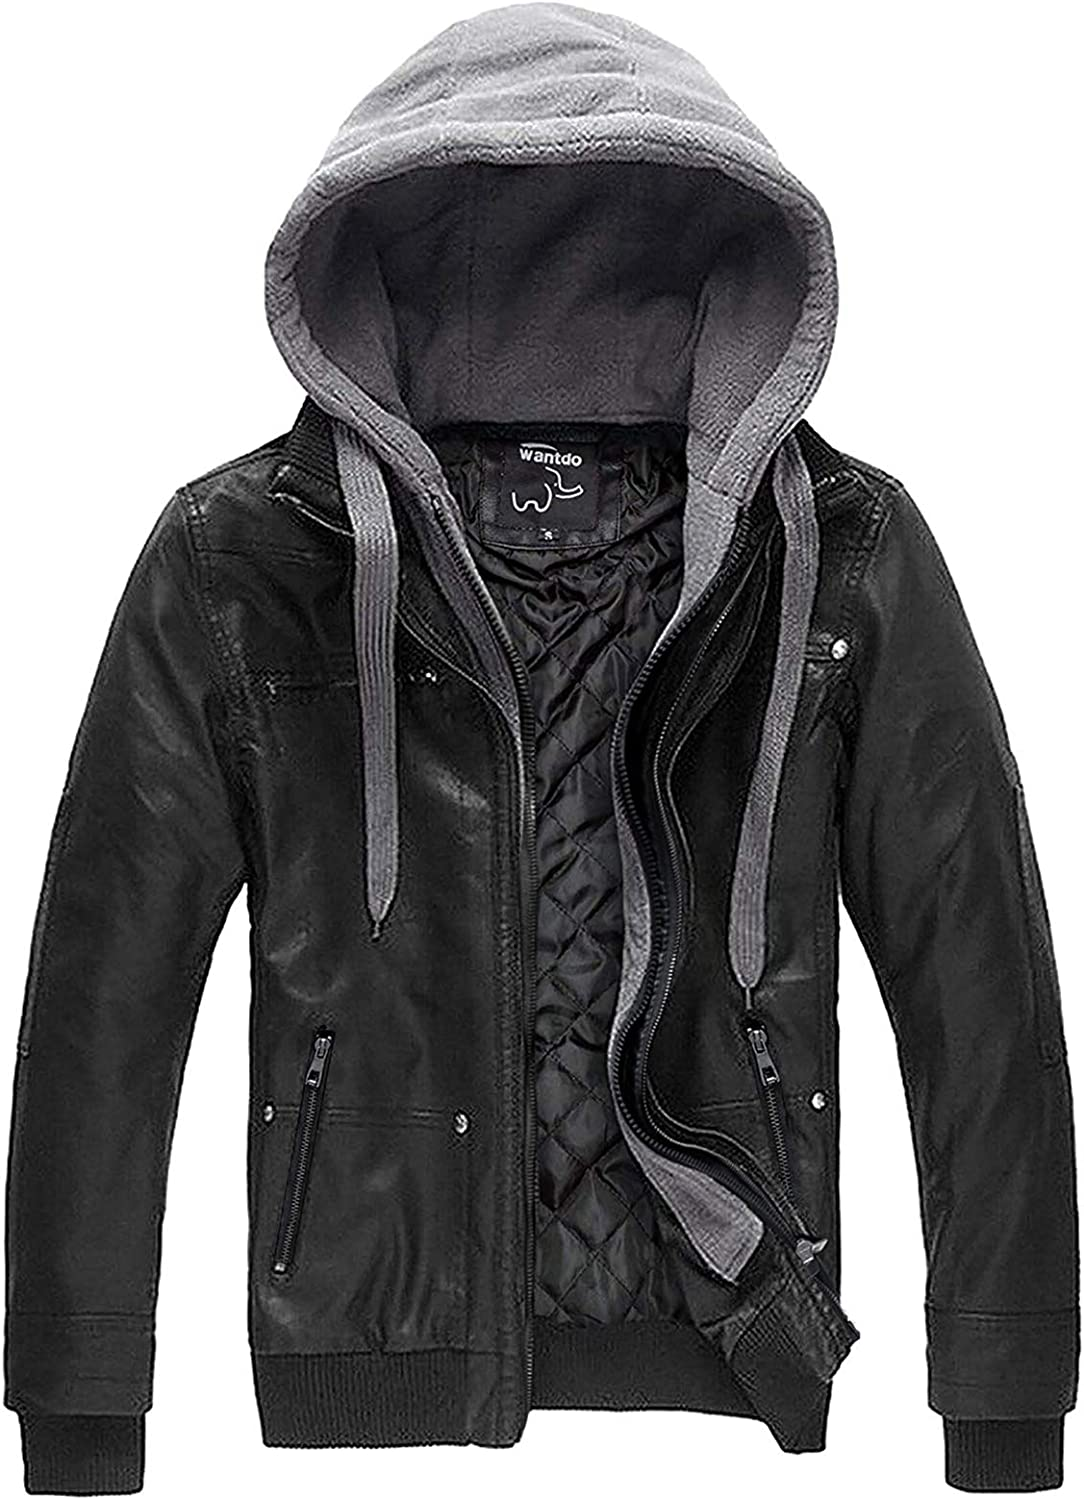 Wantdo Men's Faux Leather Jacket with Removable Hood Motorcycle Jacket Vintage Warm Winter Coat at  Men's Clothing store